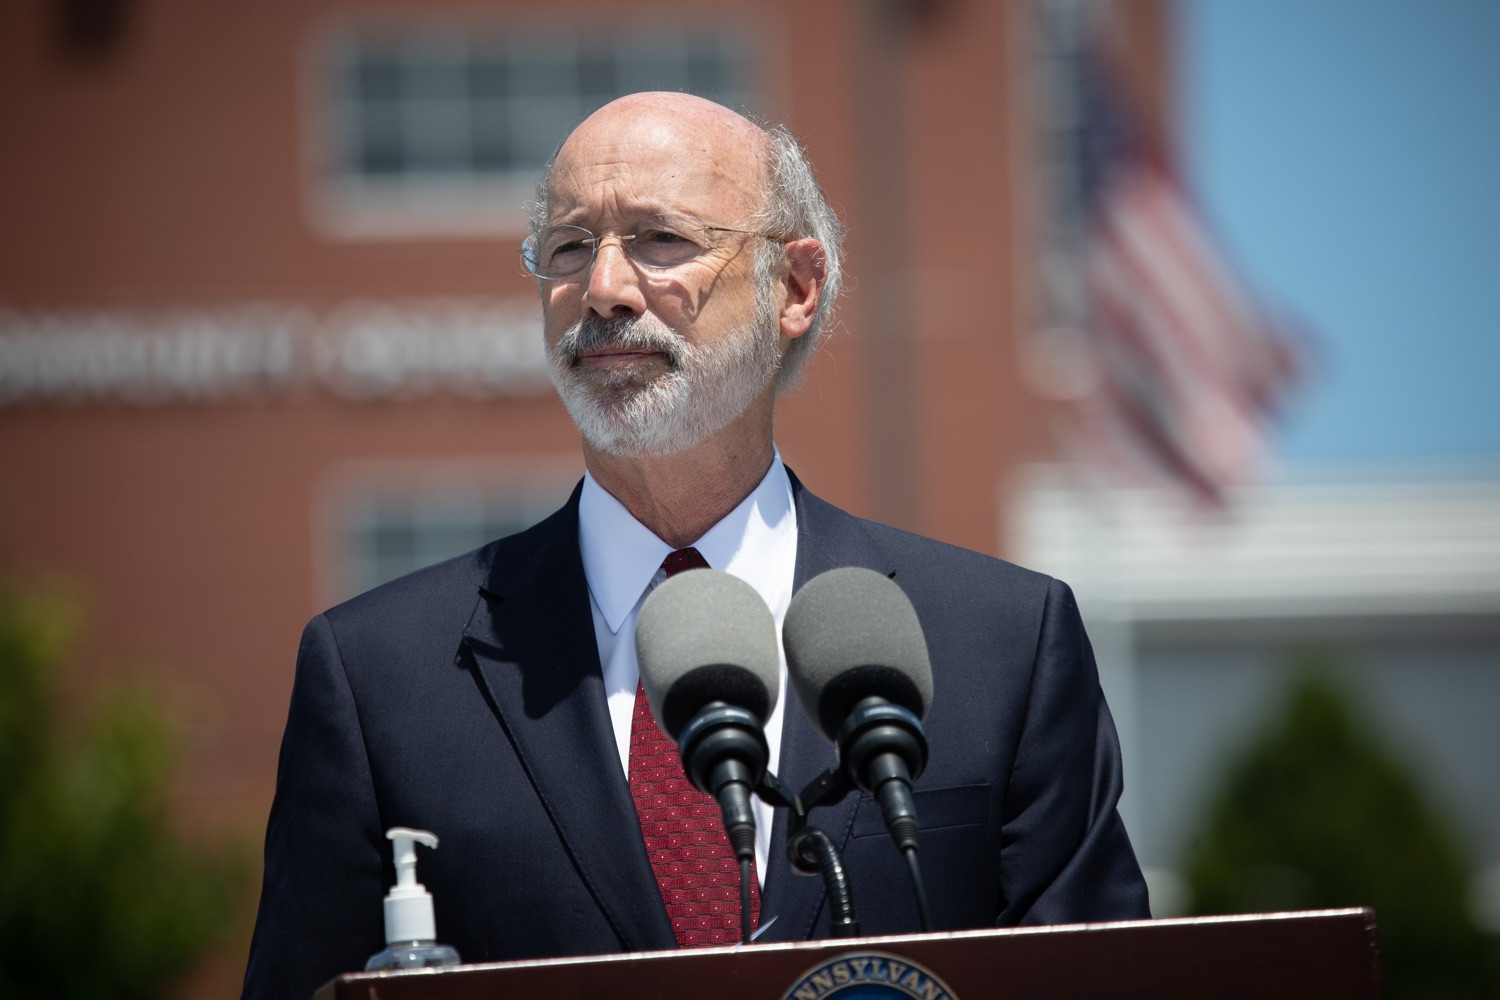 "<a href=""https://filesource.wostreaming.net/commonwealthofpa/photo/18101_gov_healthcare_dz_02.jpg"" target=""_blank"">⇣ Download Photo<br></a>Pennsylvania Governor Tom Wolf speaking at UPMC Pinnacle Community Osteopathic.As health care professionals work the front lines of the COVID-19 pandemic and the commonwealth continues to emphasize the importance of mask-wearing and social distancing to protect all, Governor Tom Wolf today visited UPMC Pinnacle Community Osteopathic Hospital in Harrisburg to thank staff and stress why mask-wearing is a necessary requirement to fight the spread of COVID-19.    Harrisburg, PA  June 29, 2020"